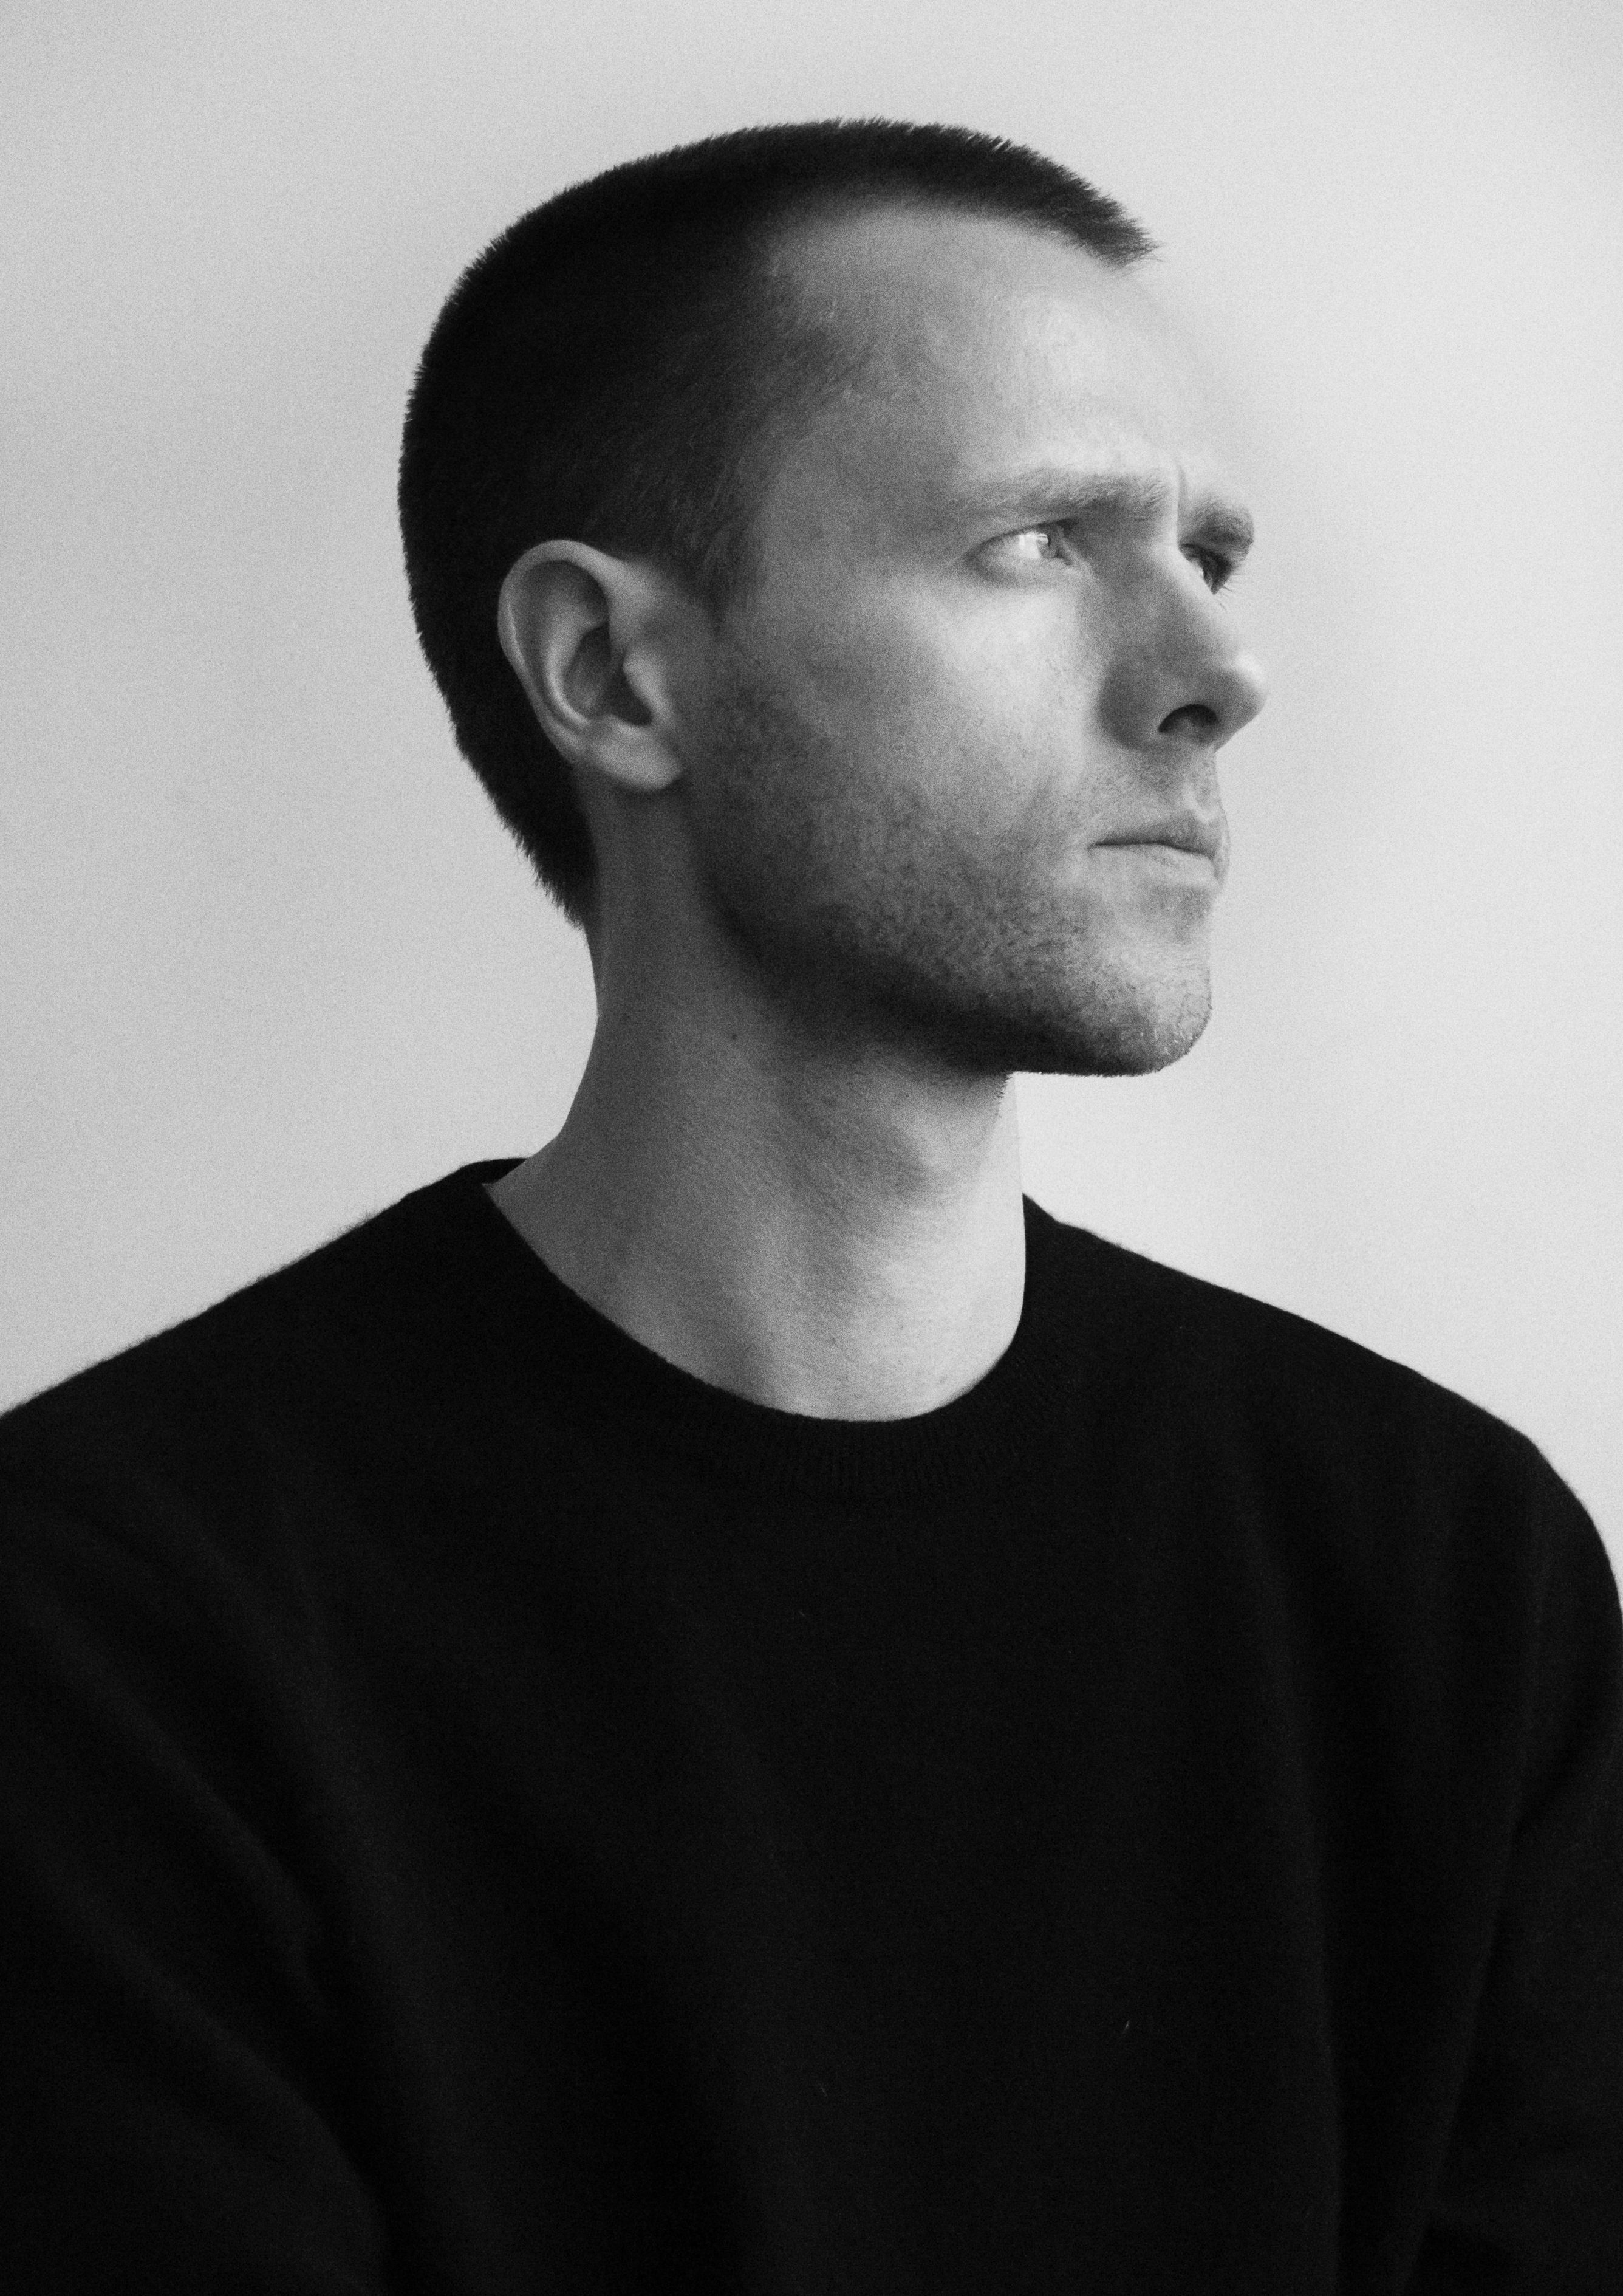 Portrait of Belgian fashion designer and MYKITA collaborator Tim Coppens